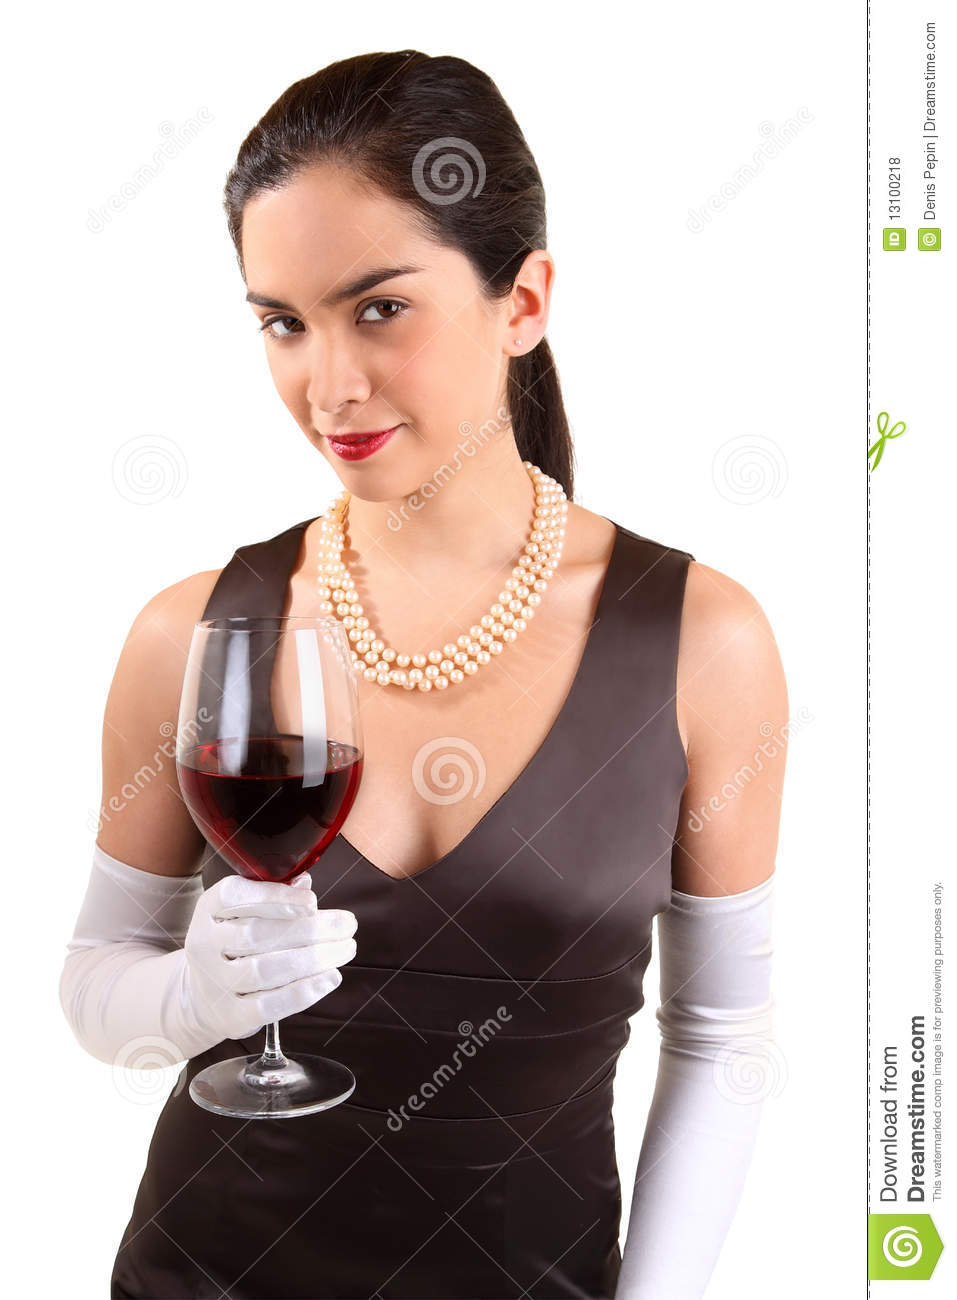 Classy Woman Holding A Glass Of Red Wine Royalty Free ...